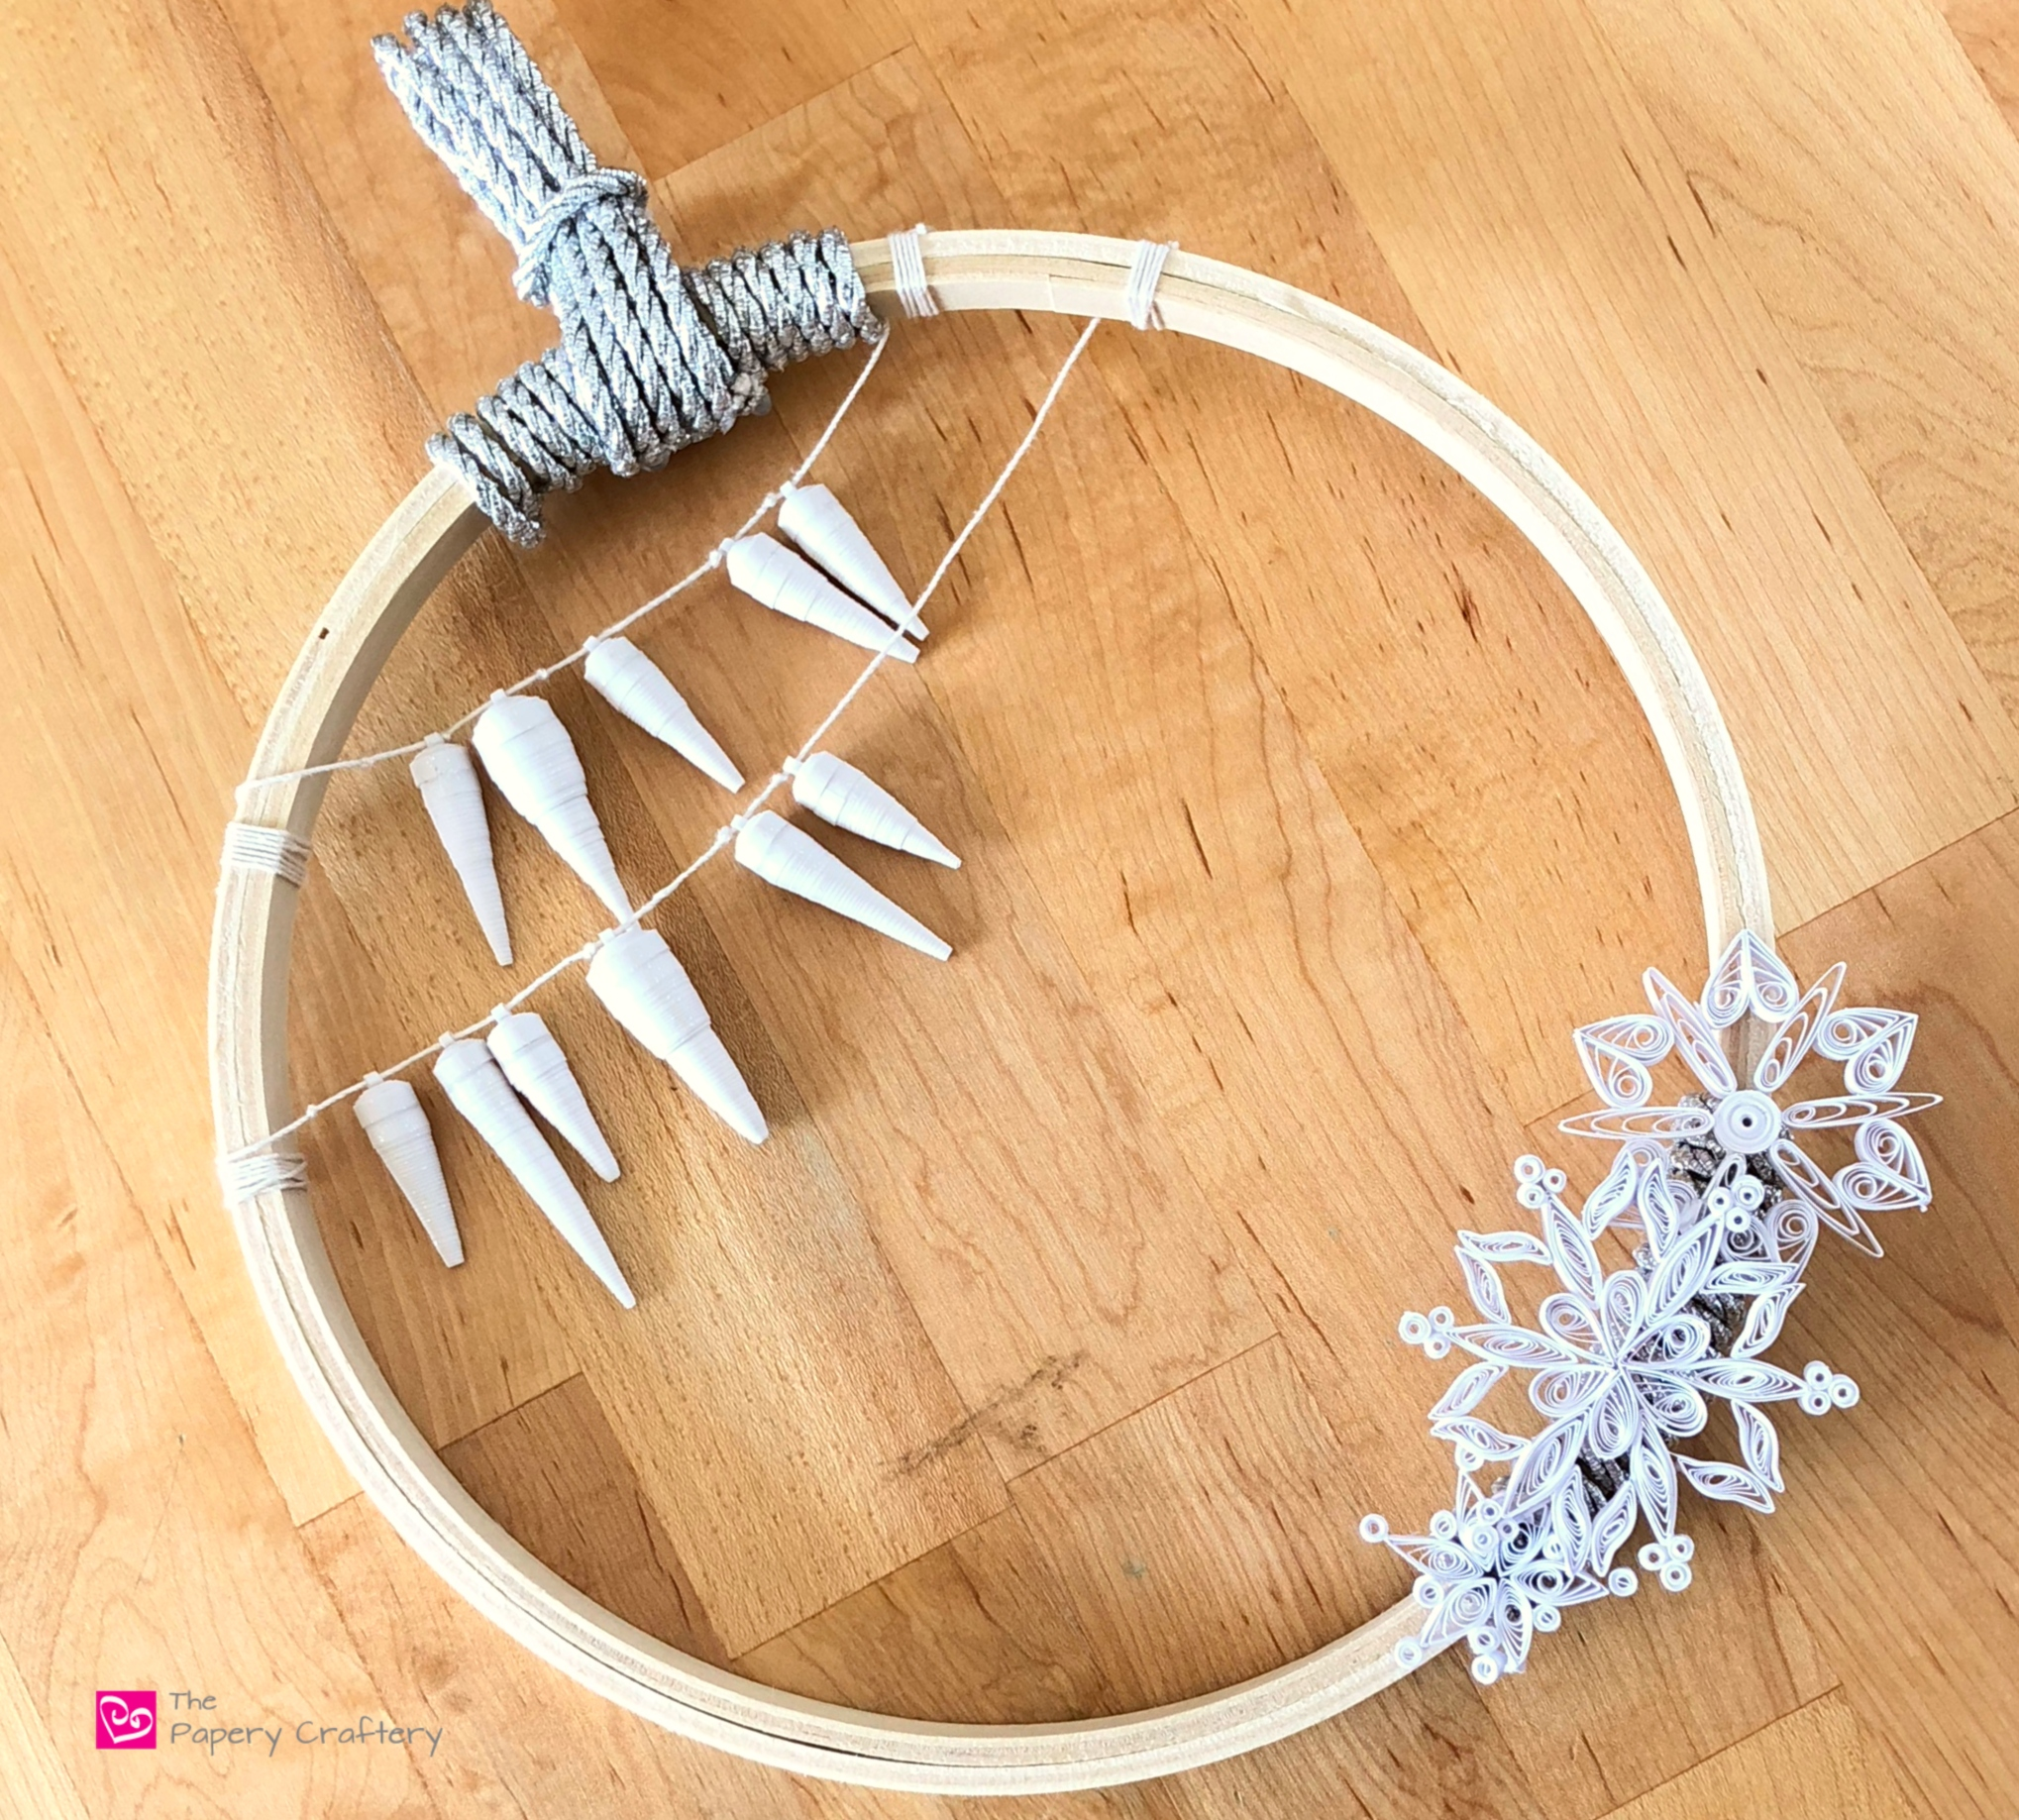 How to Make Quilling Paper Icicles - Celebrate the winter season with glittered paper icicles || www.ThePaperyCraftery.com